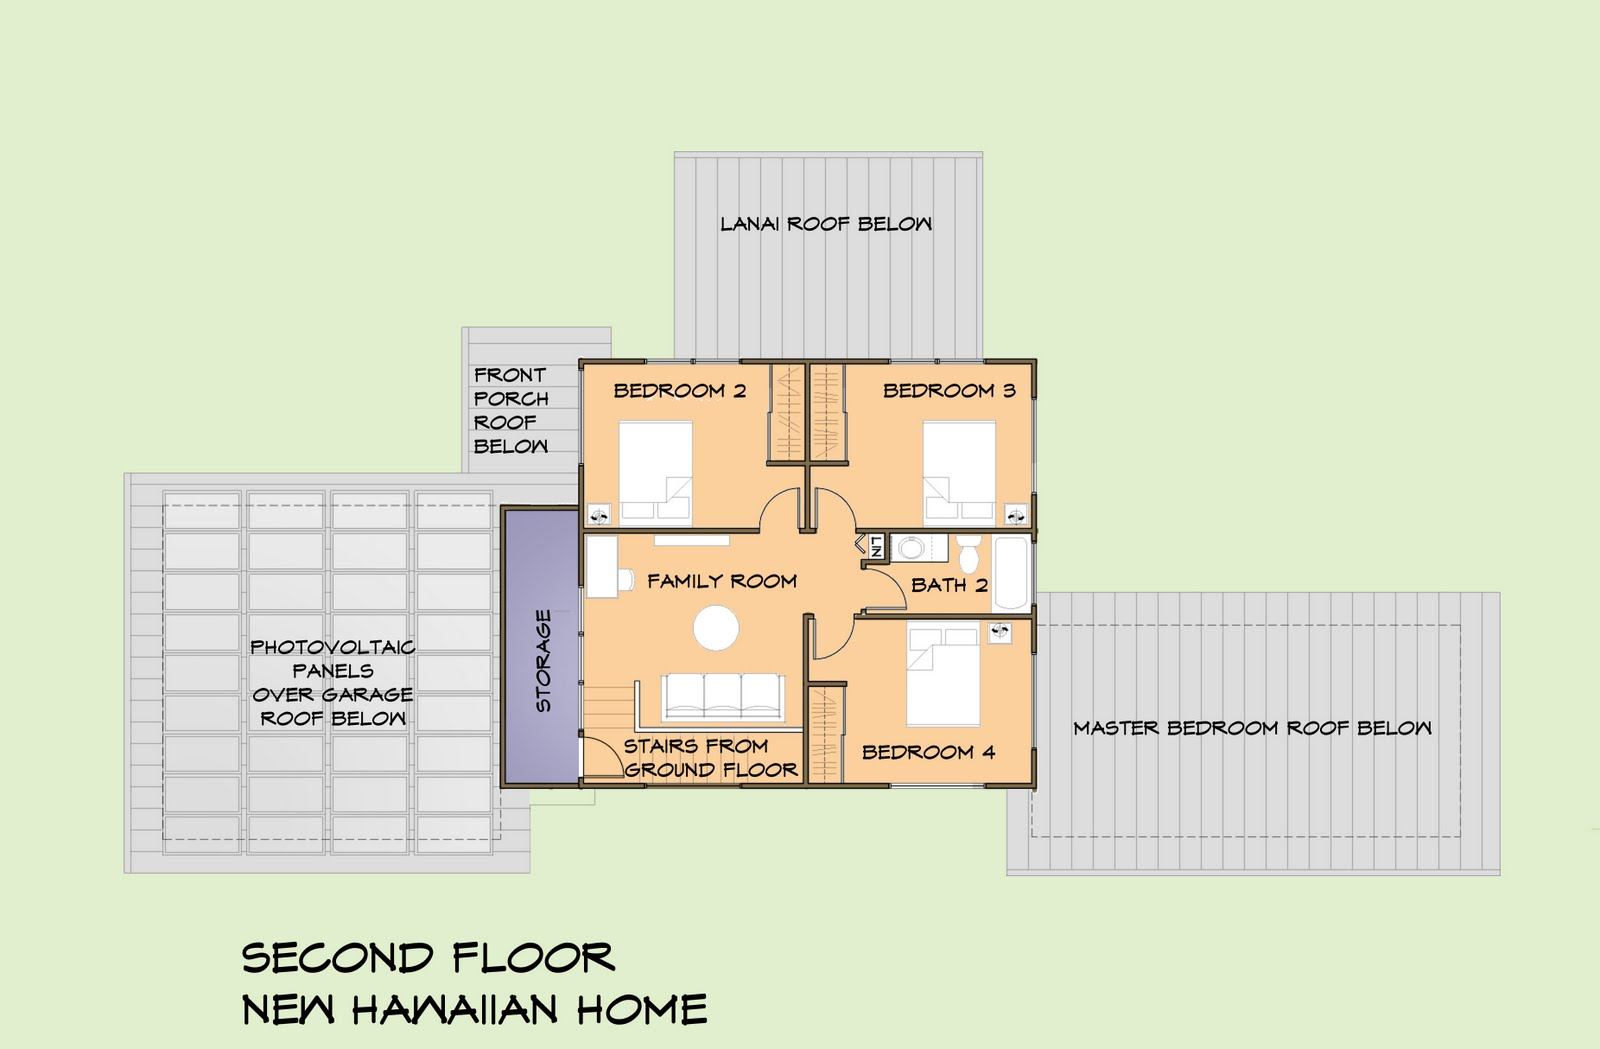 New hawaiian home nhh second floor plan for Hawaiian house plans